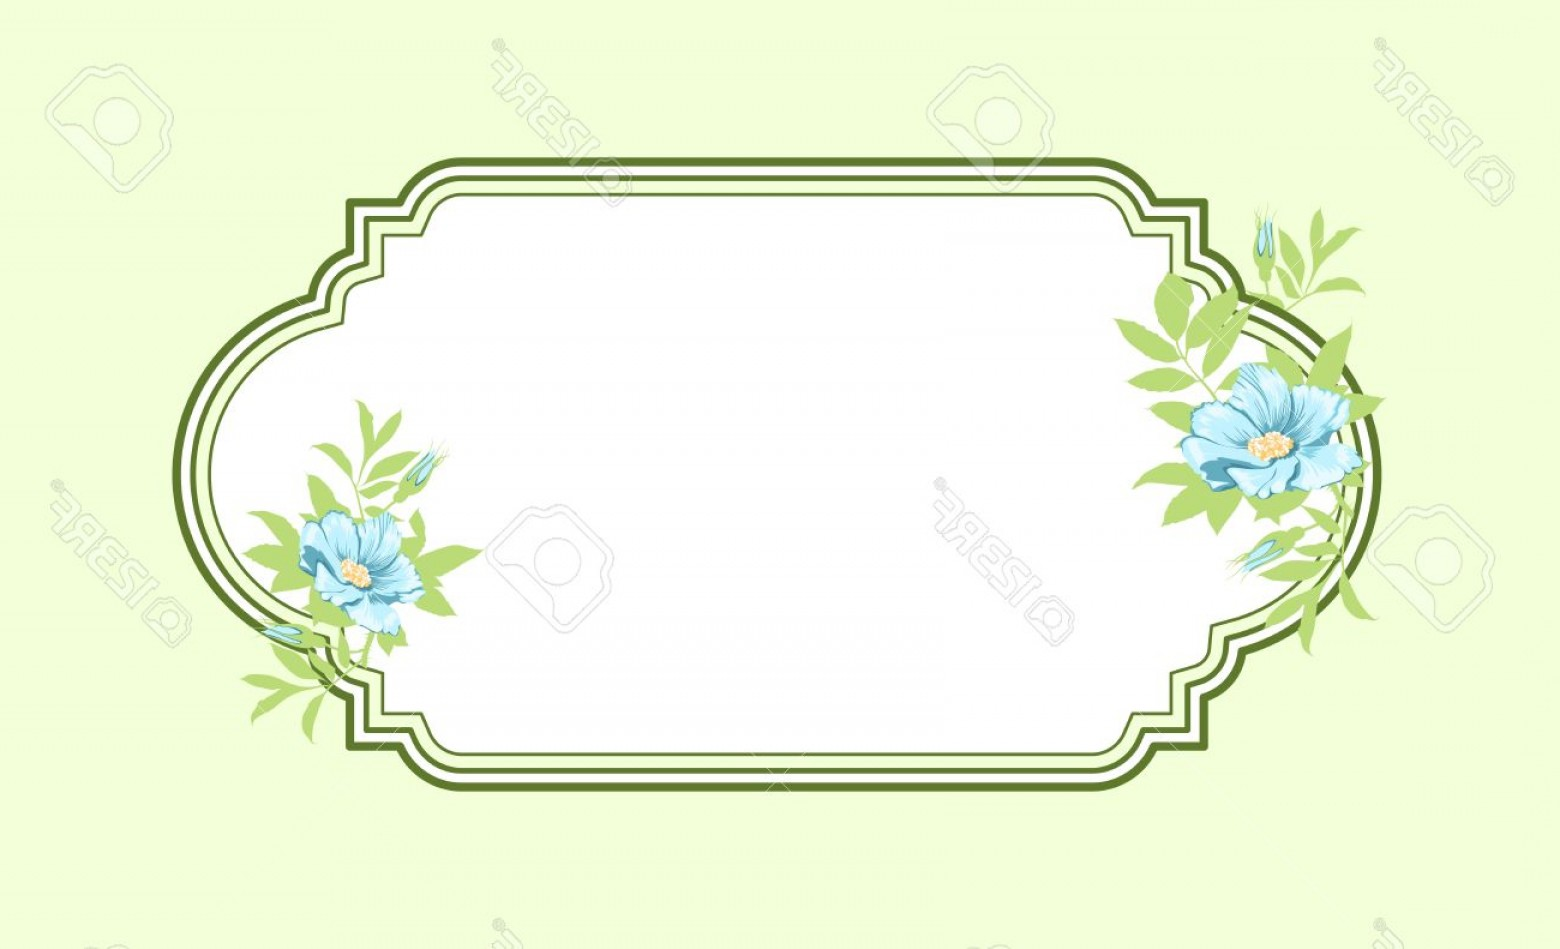 Green Oval Border Vector: Photoclassic Hand Drawn Oval Green Frame With Light Blue Roses